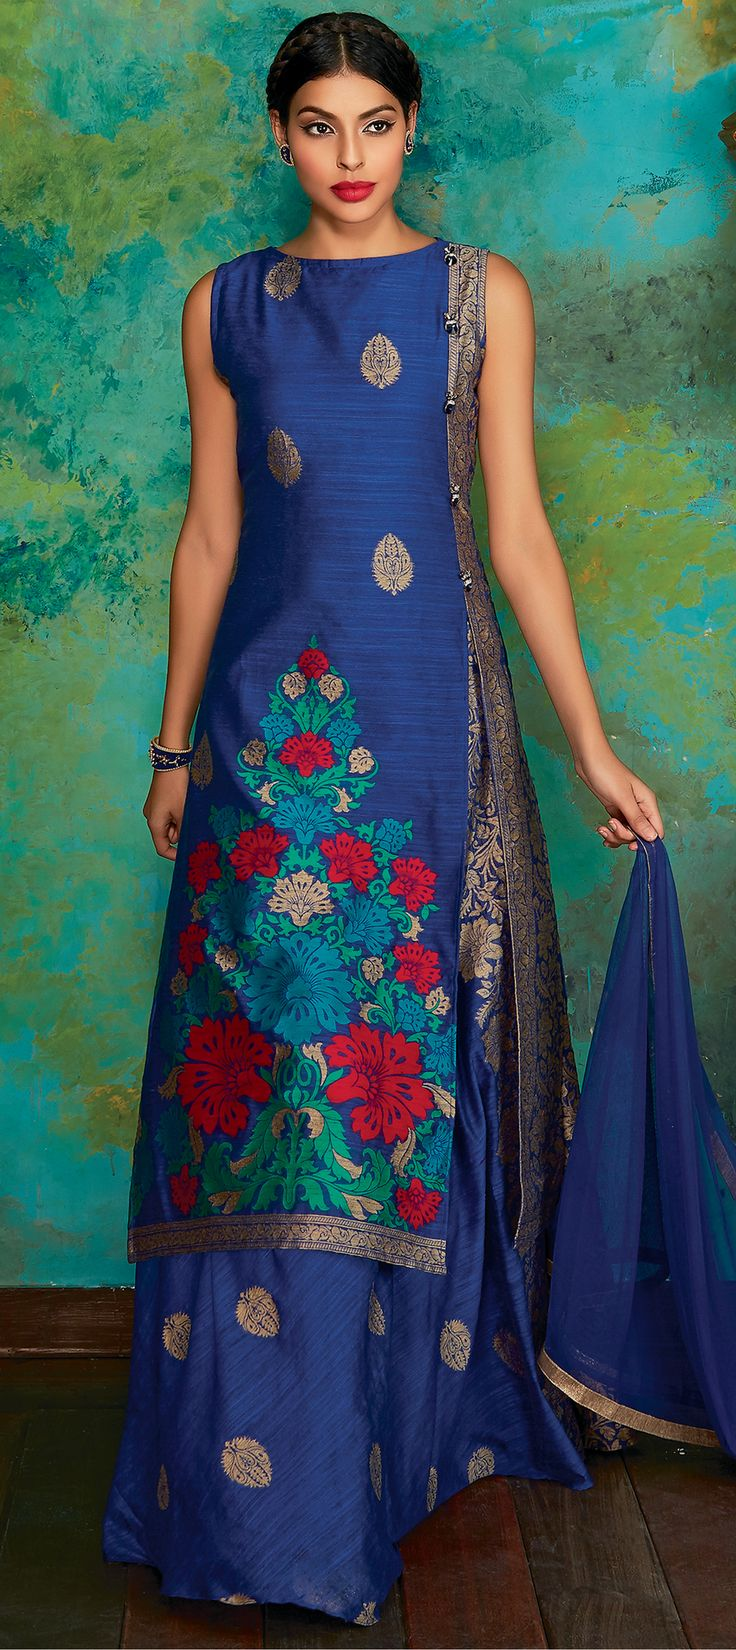 737091: Blue color family stitched Long Lehenga Choli .